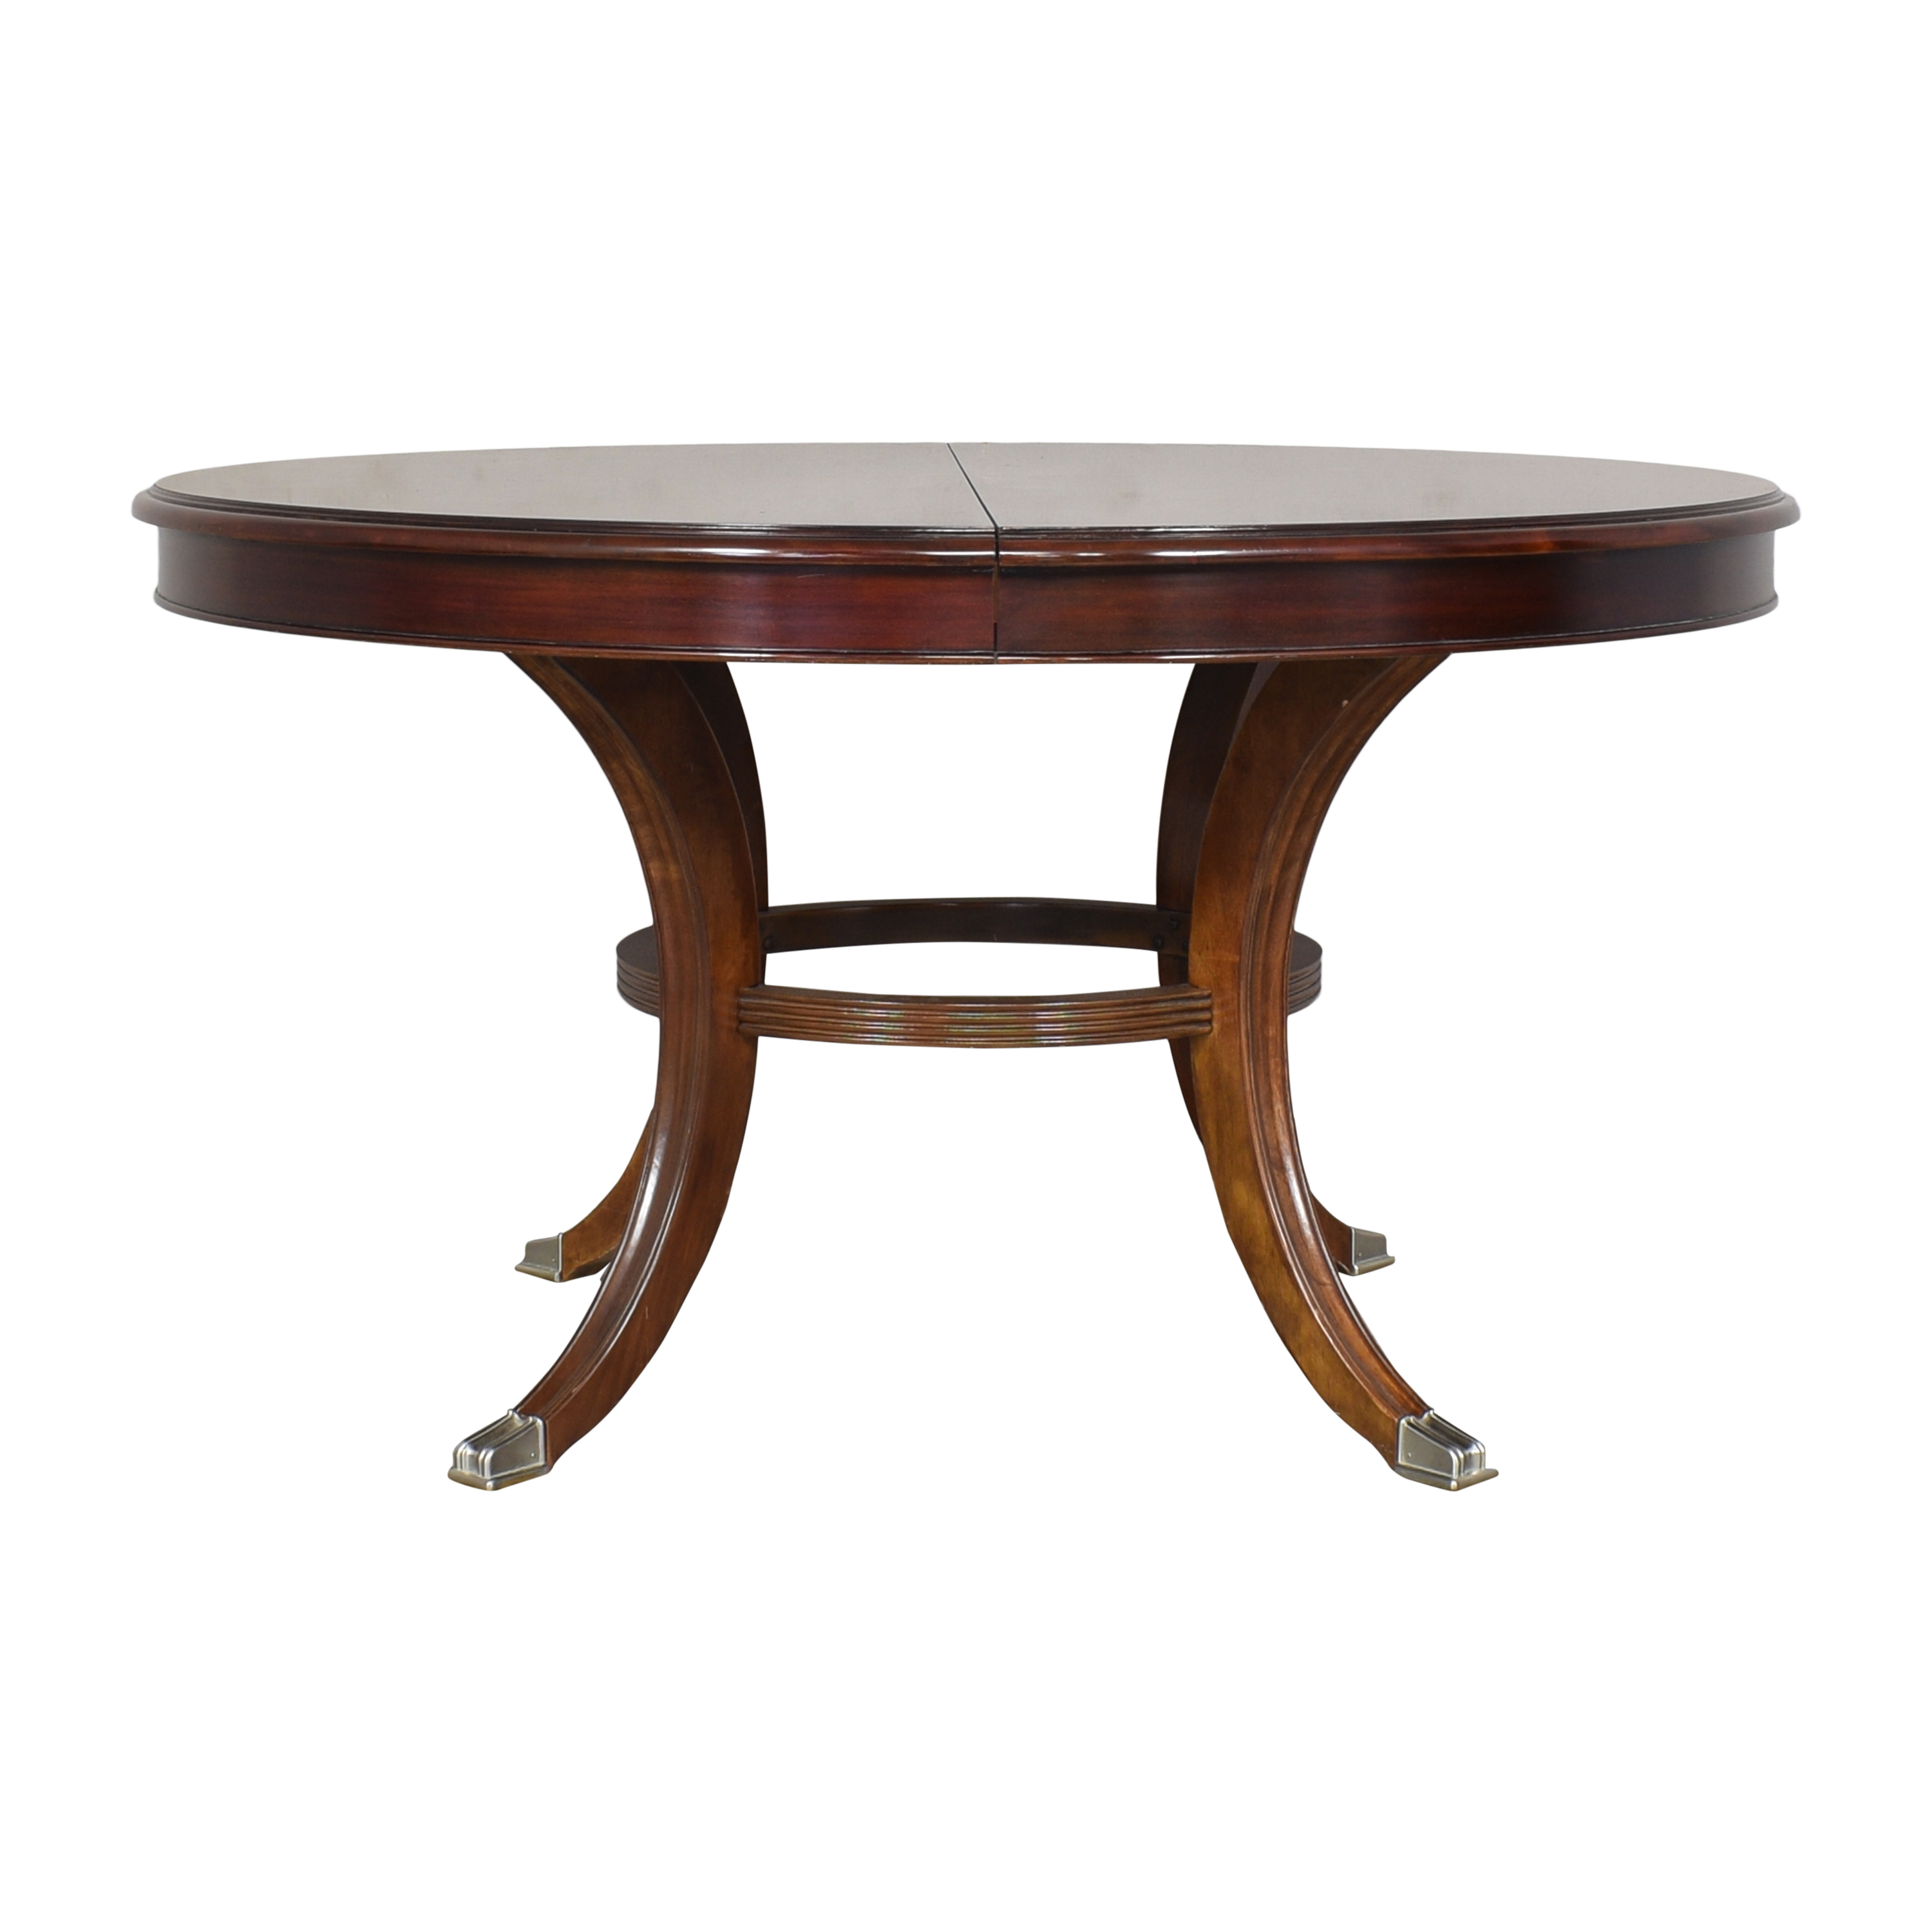 Thomasville Bogart Collection Extendable Dining Table sale